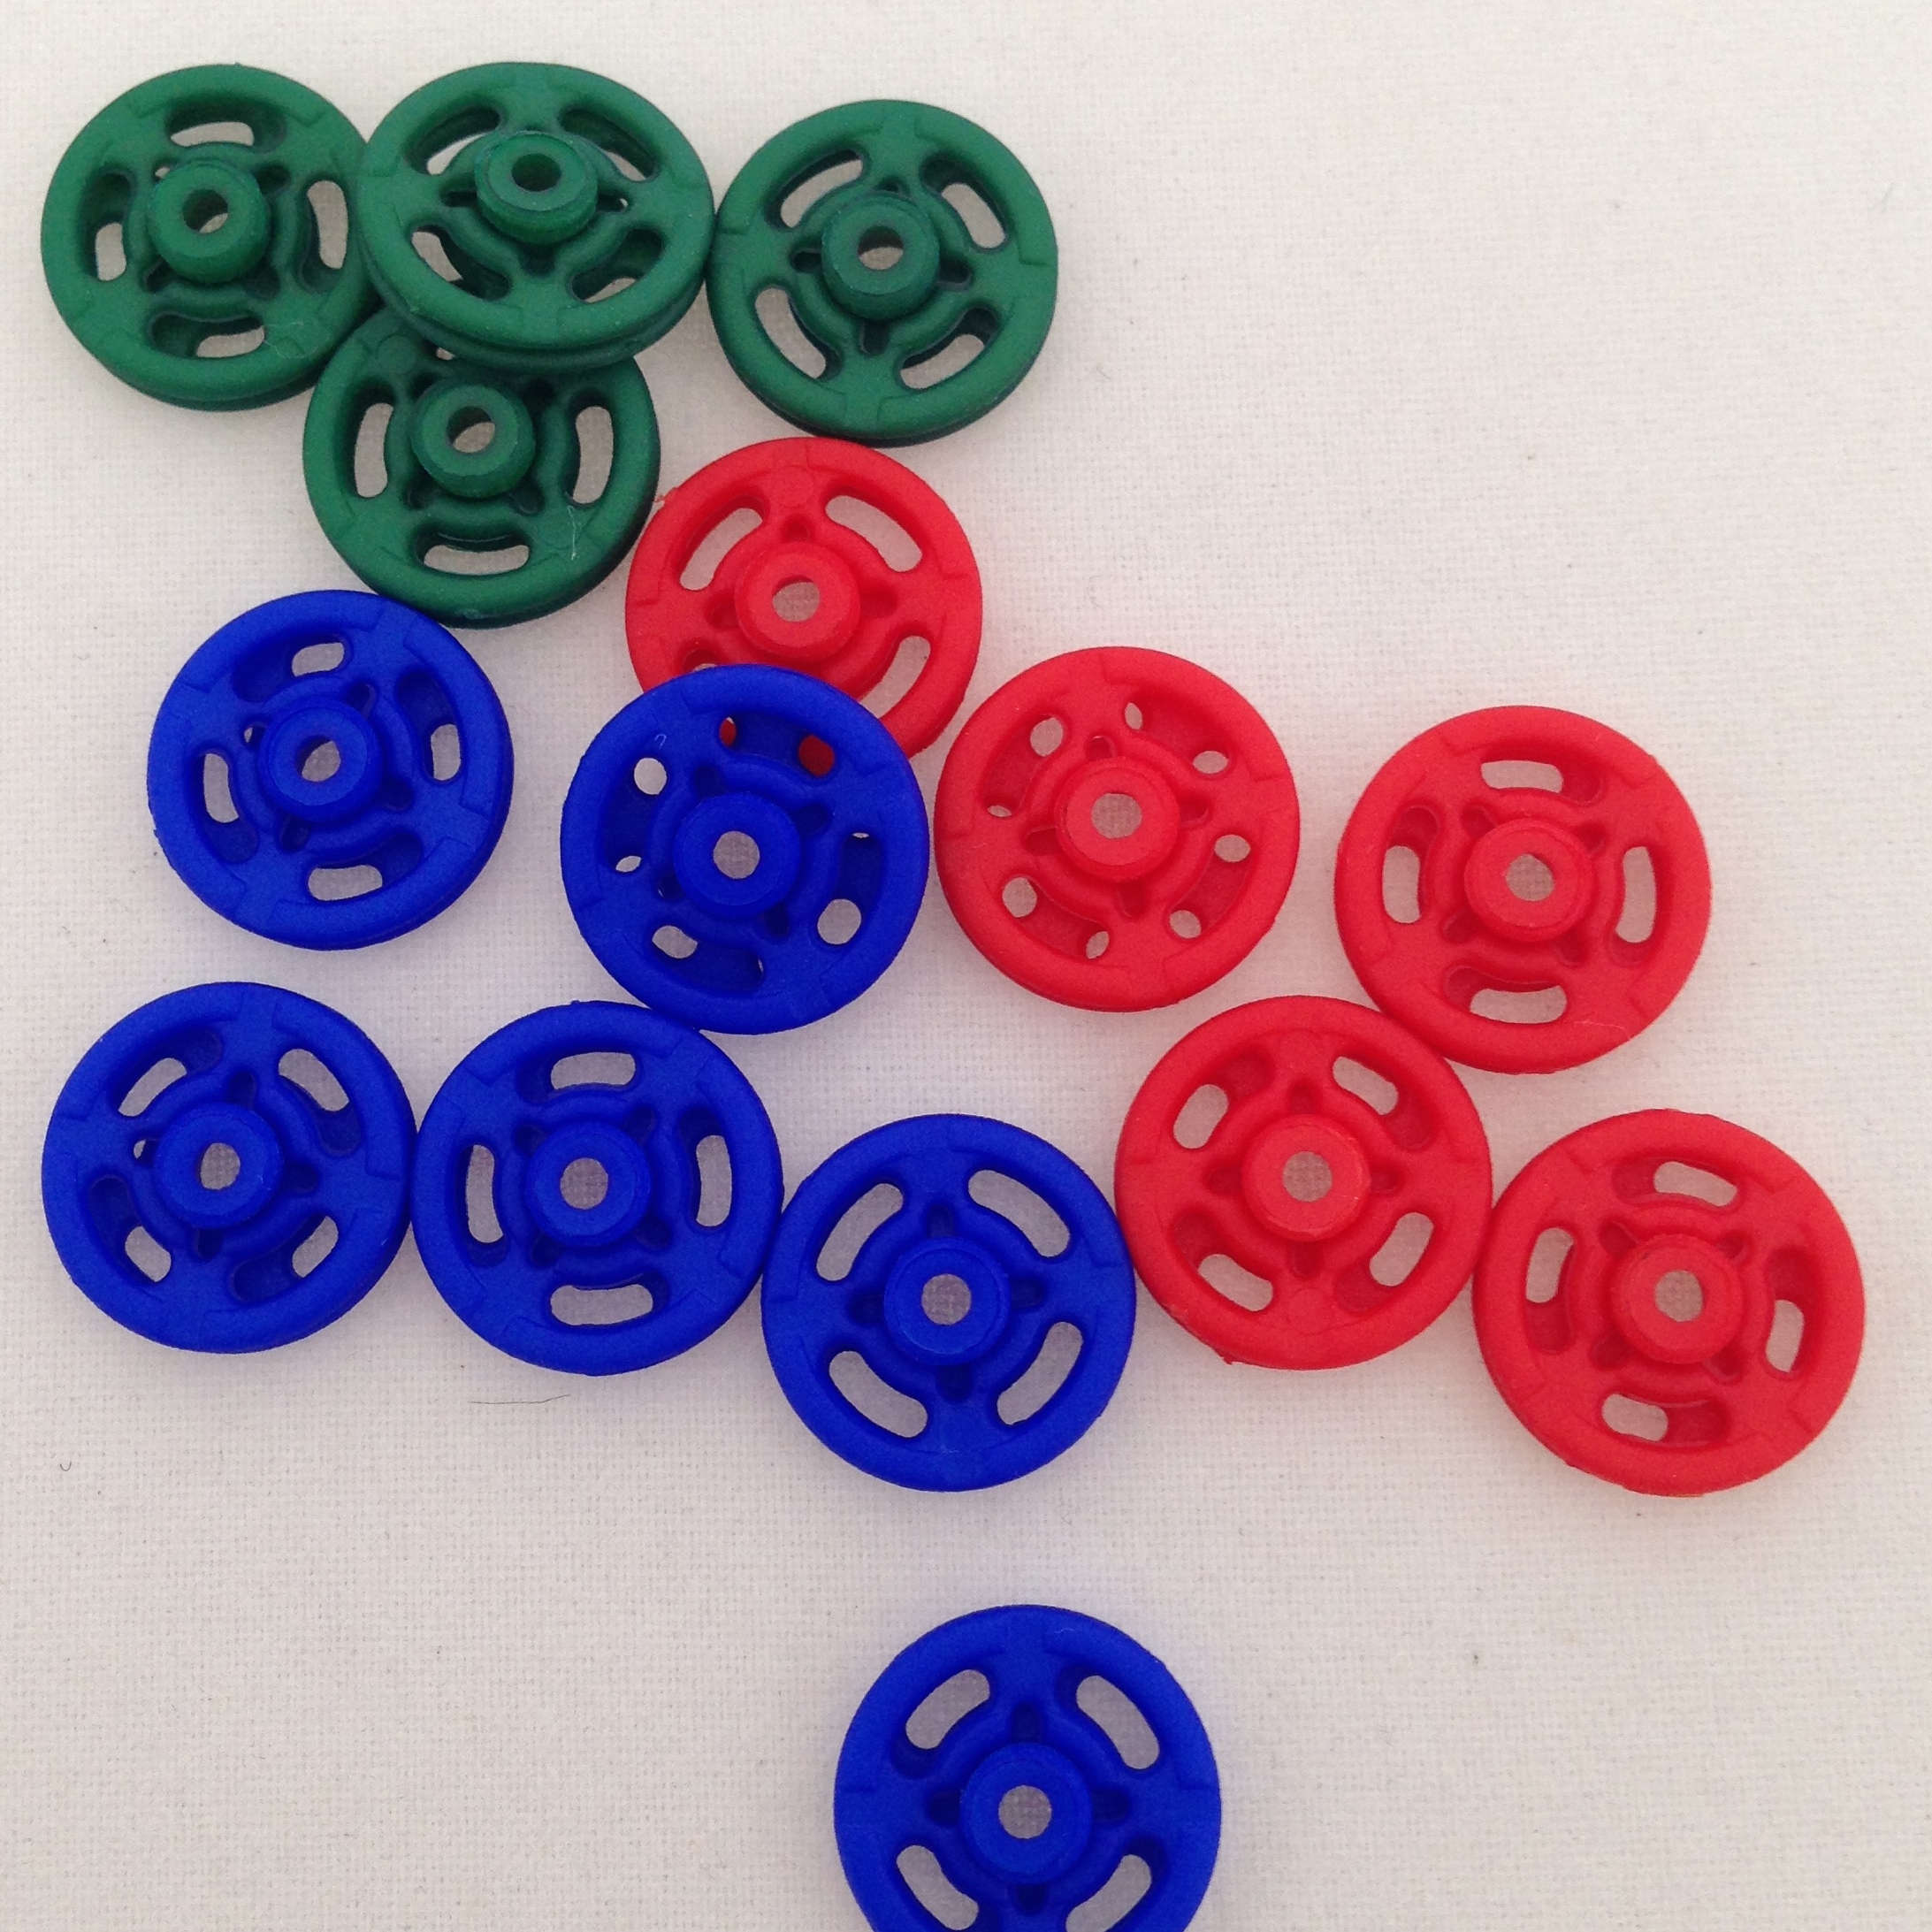 Coloured Press Studs or 'Poppers'